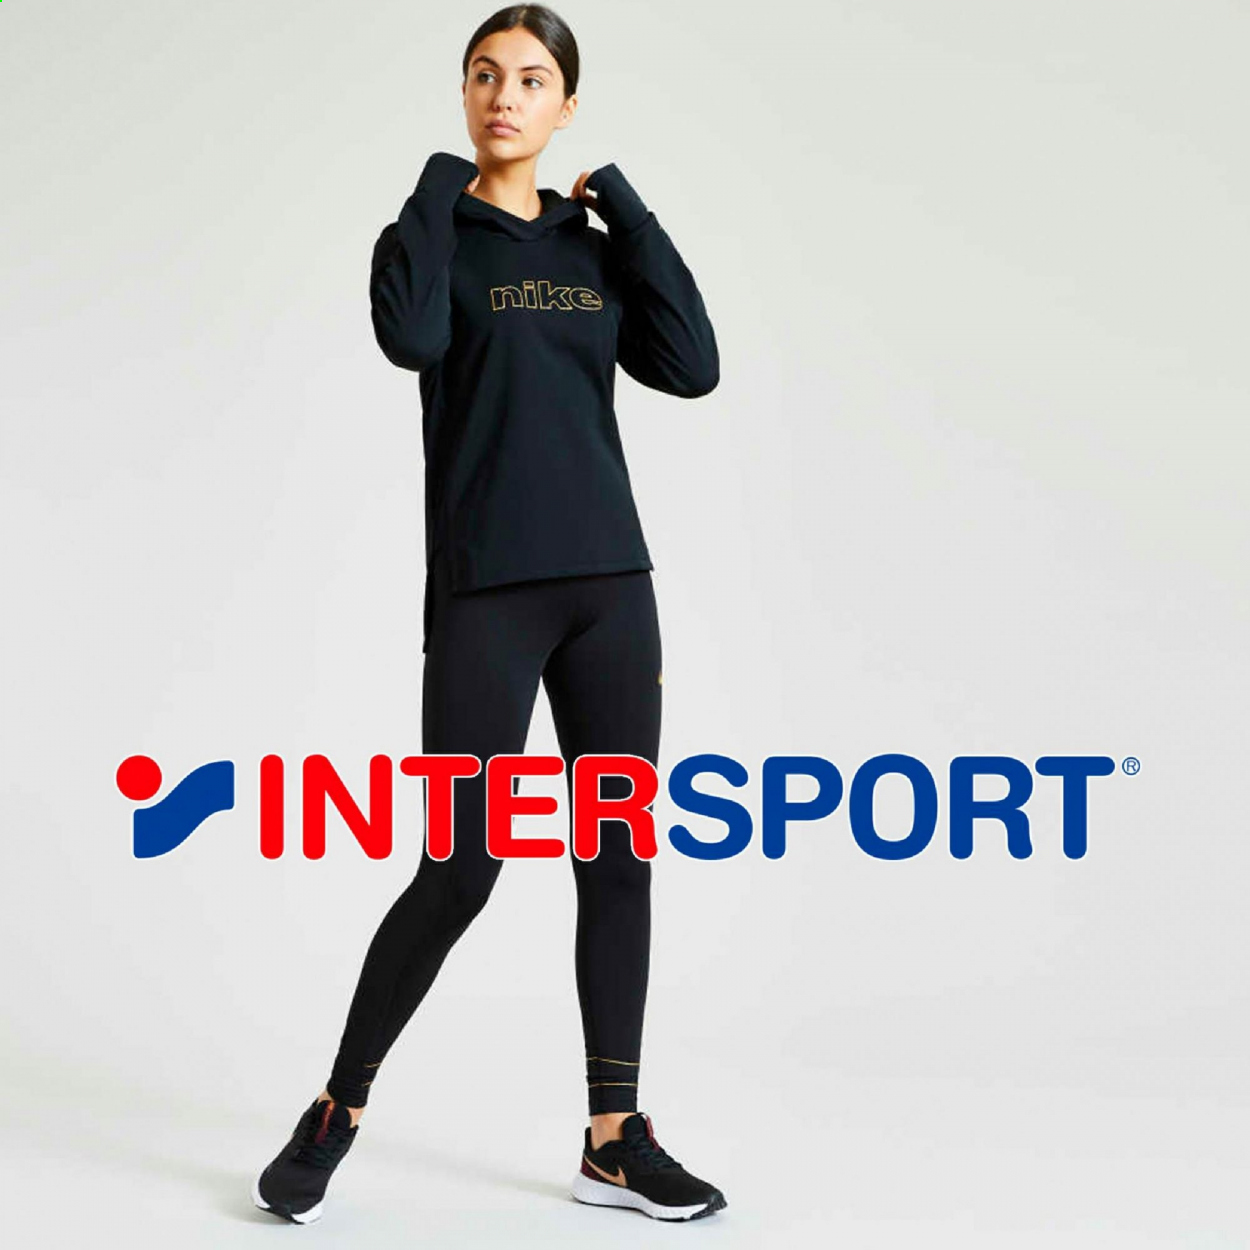 Intersport-aanbieding. Pagina 1.